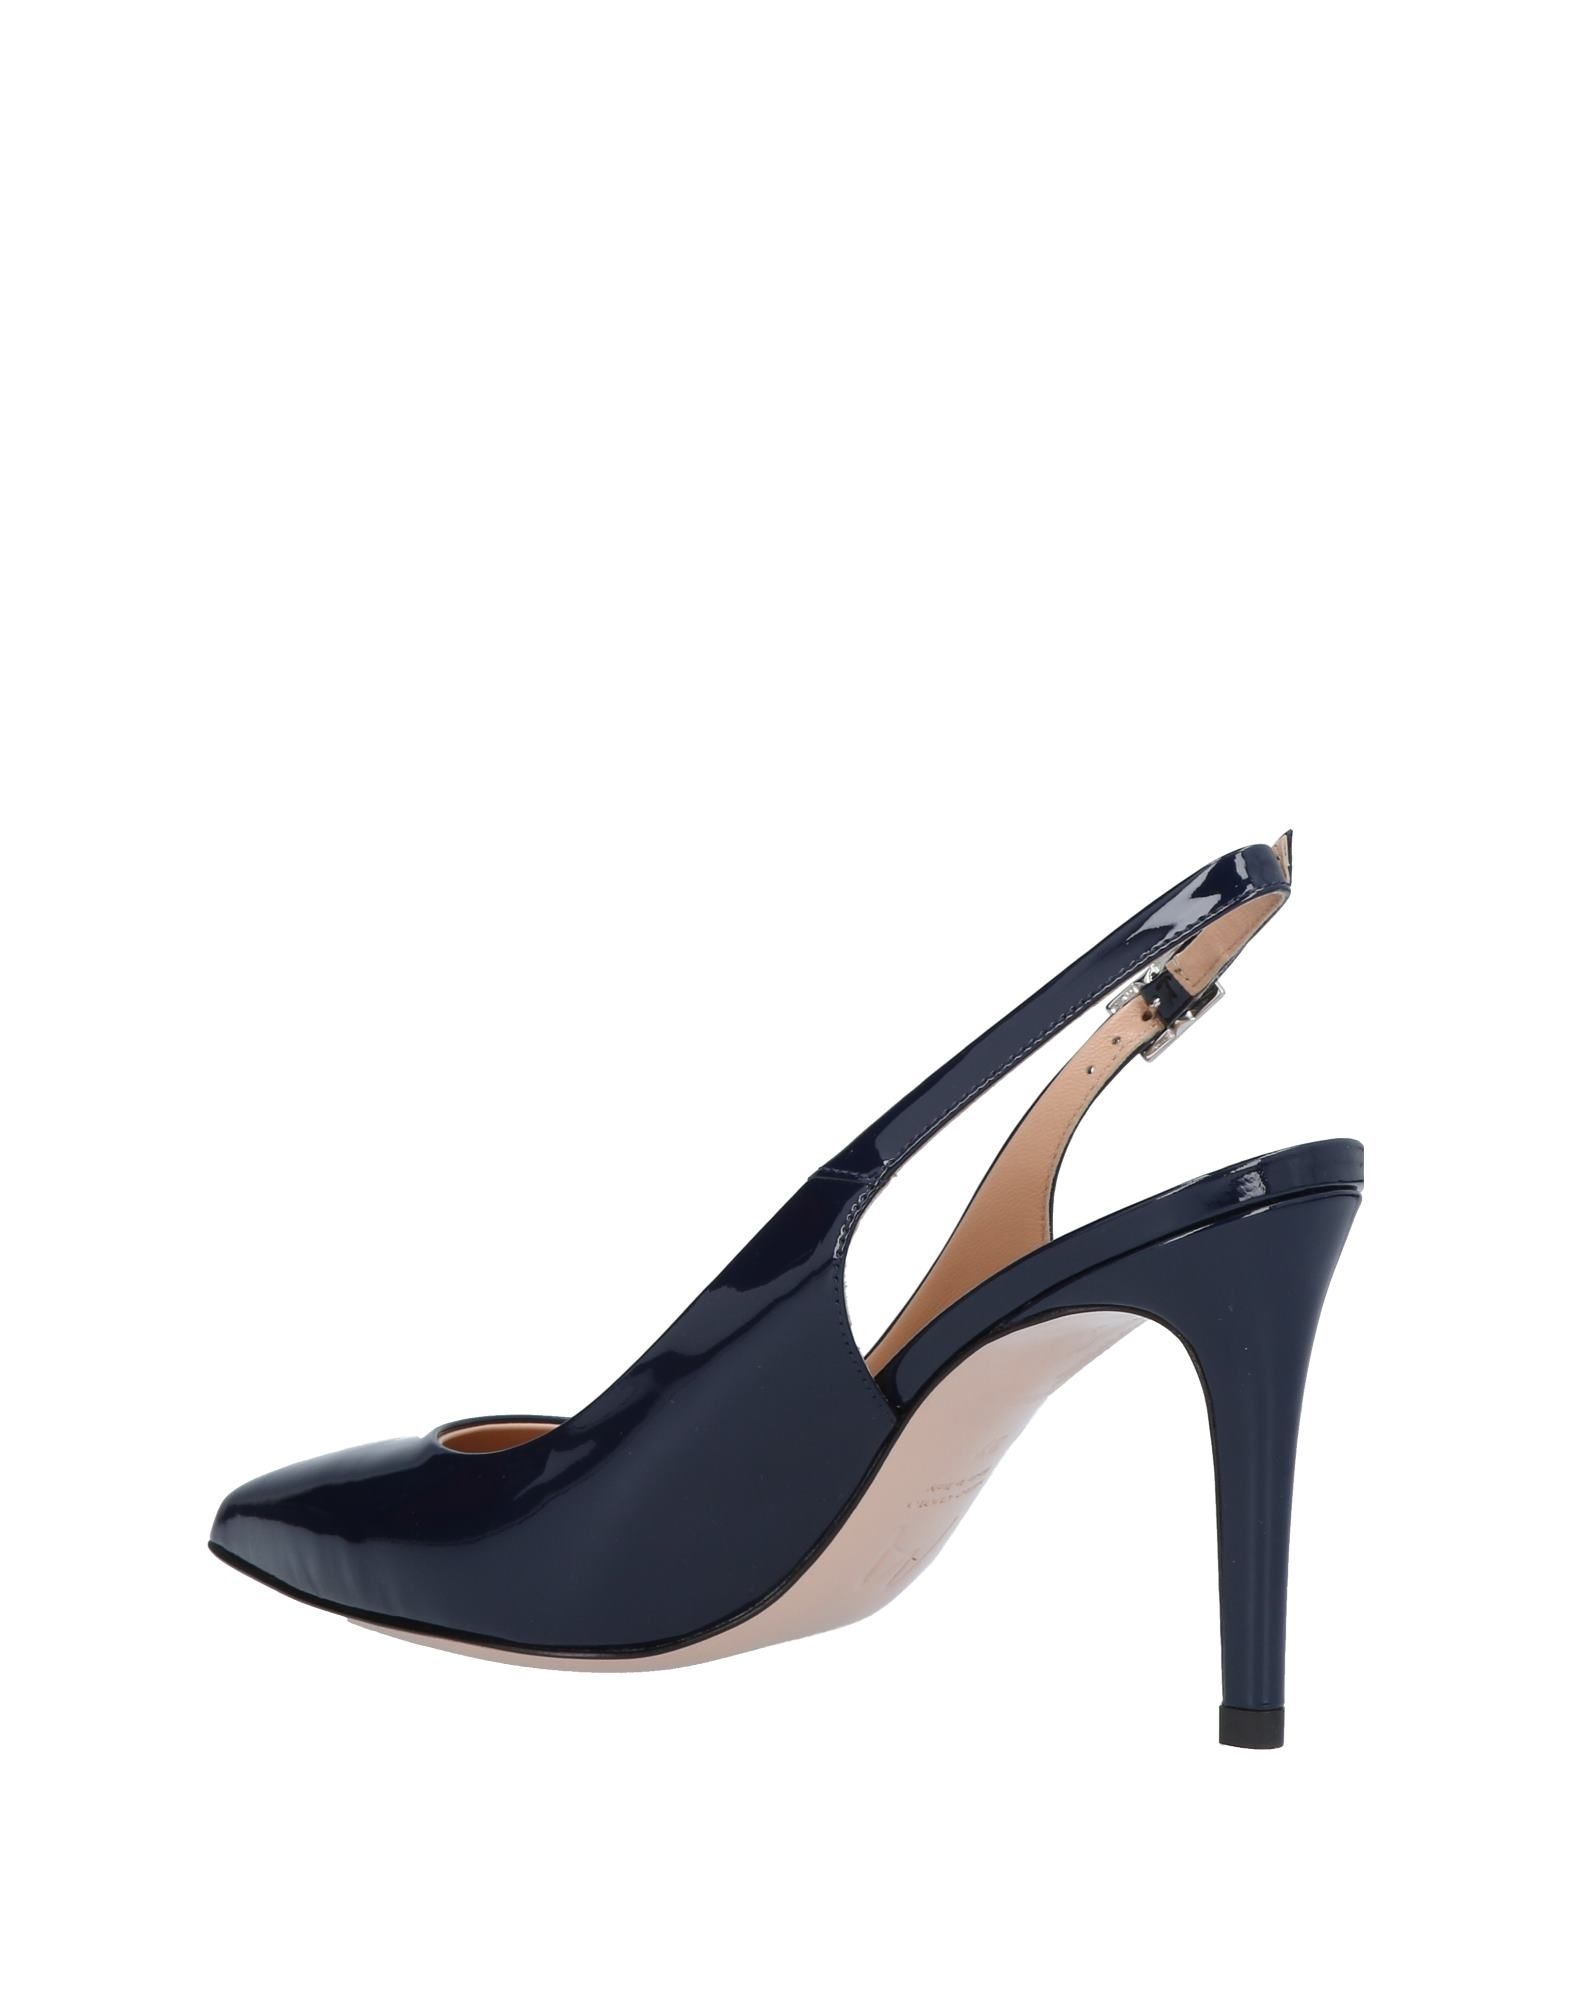 Gut Barbabella um billige Schuhe zu tragenMarco Barbabella Gut Pumps Damen  11413450RB 624afa